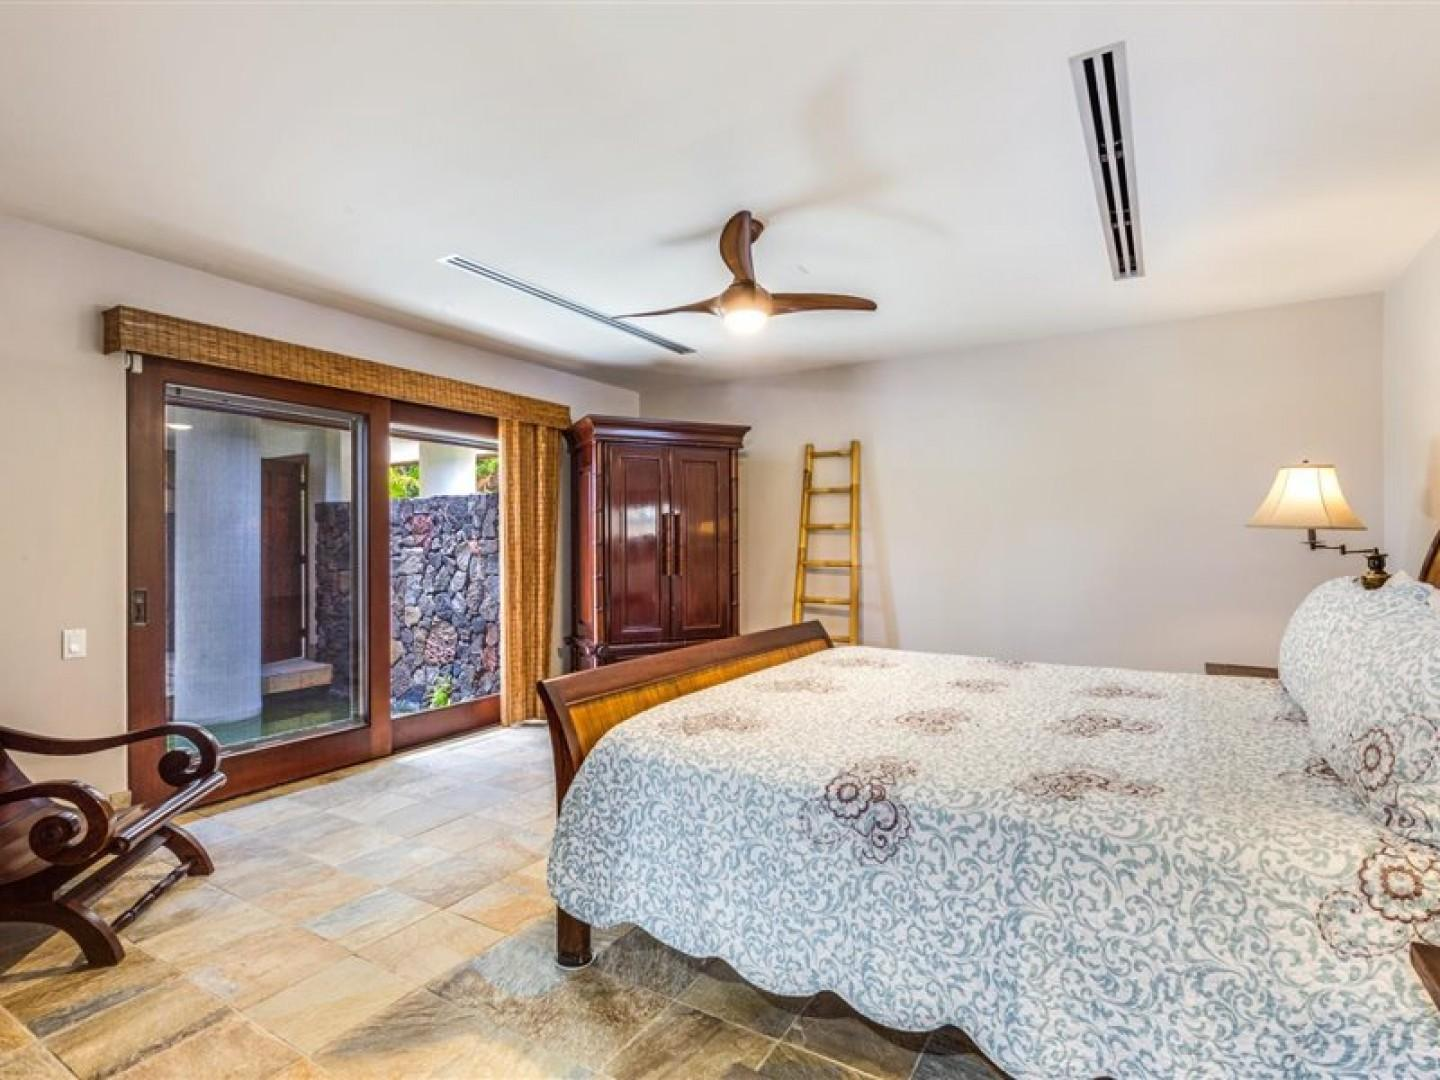 25-Bedroom looks out to the beautiful koi pond!